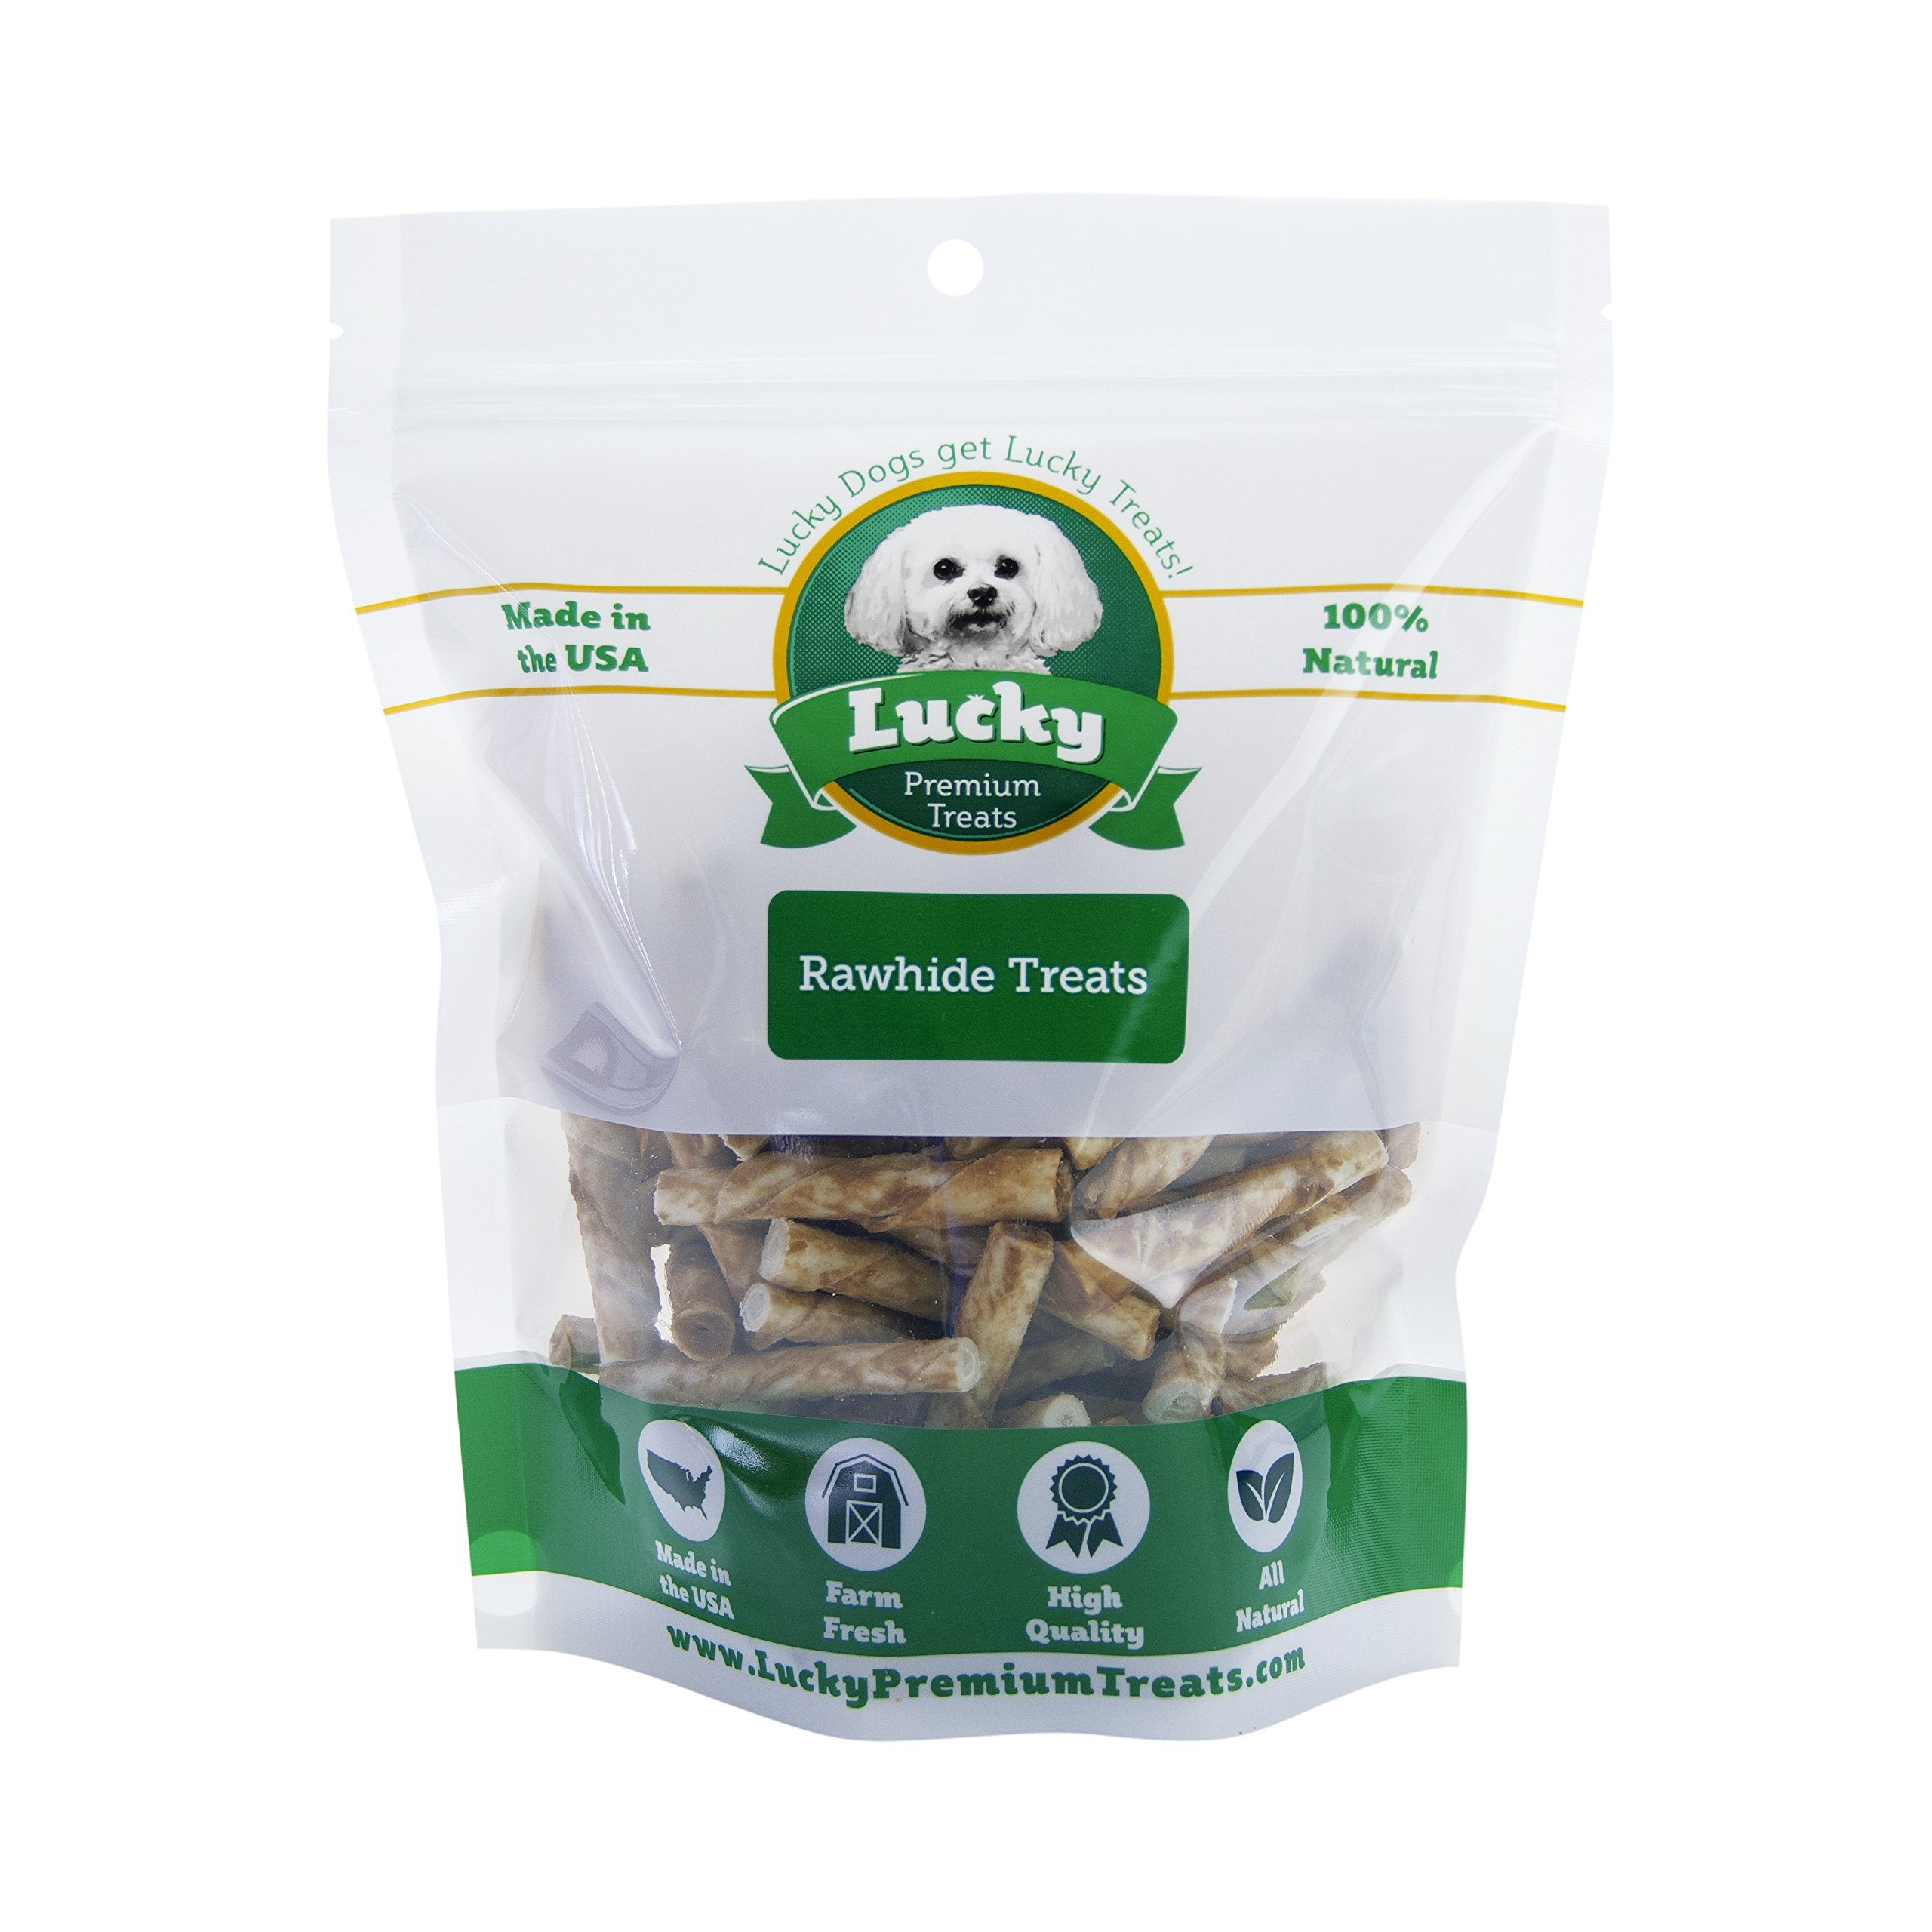 Peanut Butter Flavored Rawhide Dog Treats for Toy Size Dogs Made in the USA Only by Lucky Premium Treats, 435 Chews